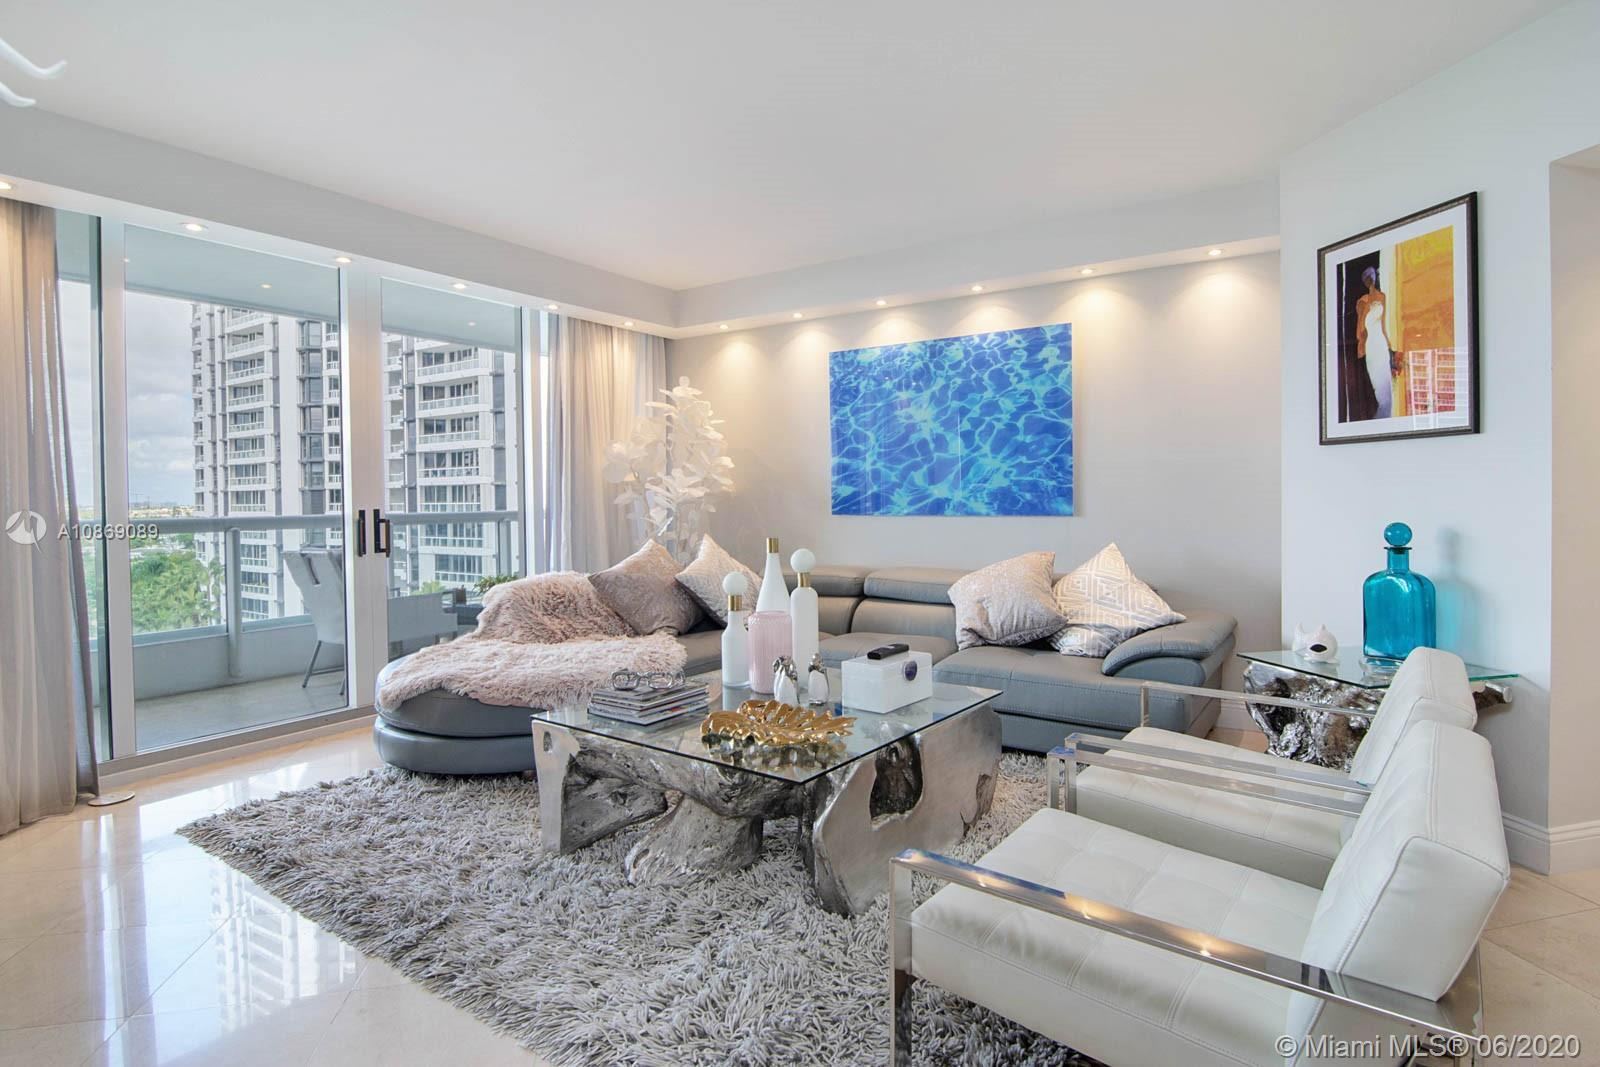 COMPLETELY REDONE 3 BED 2 BATH + DEN APARTMENT ( Maids Quarter). NEW KITCHEN, NEW BATHROOMS, MARBLE